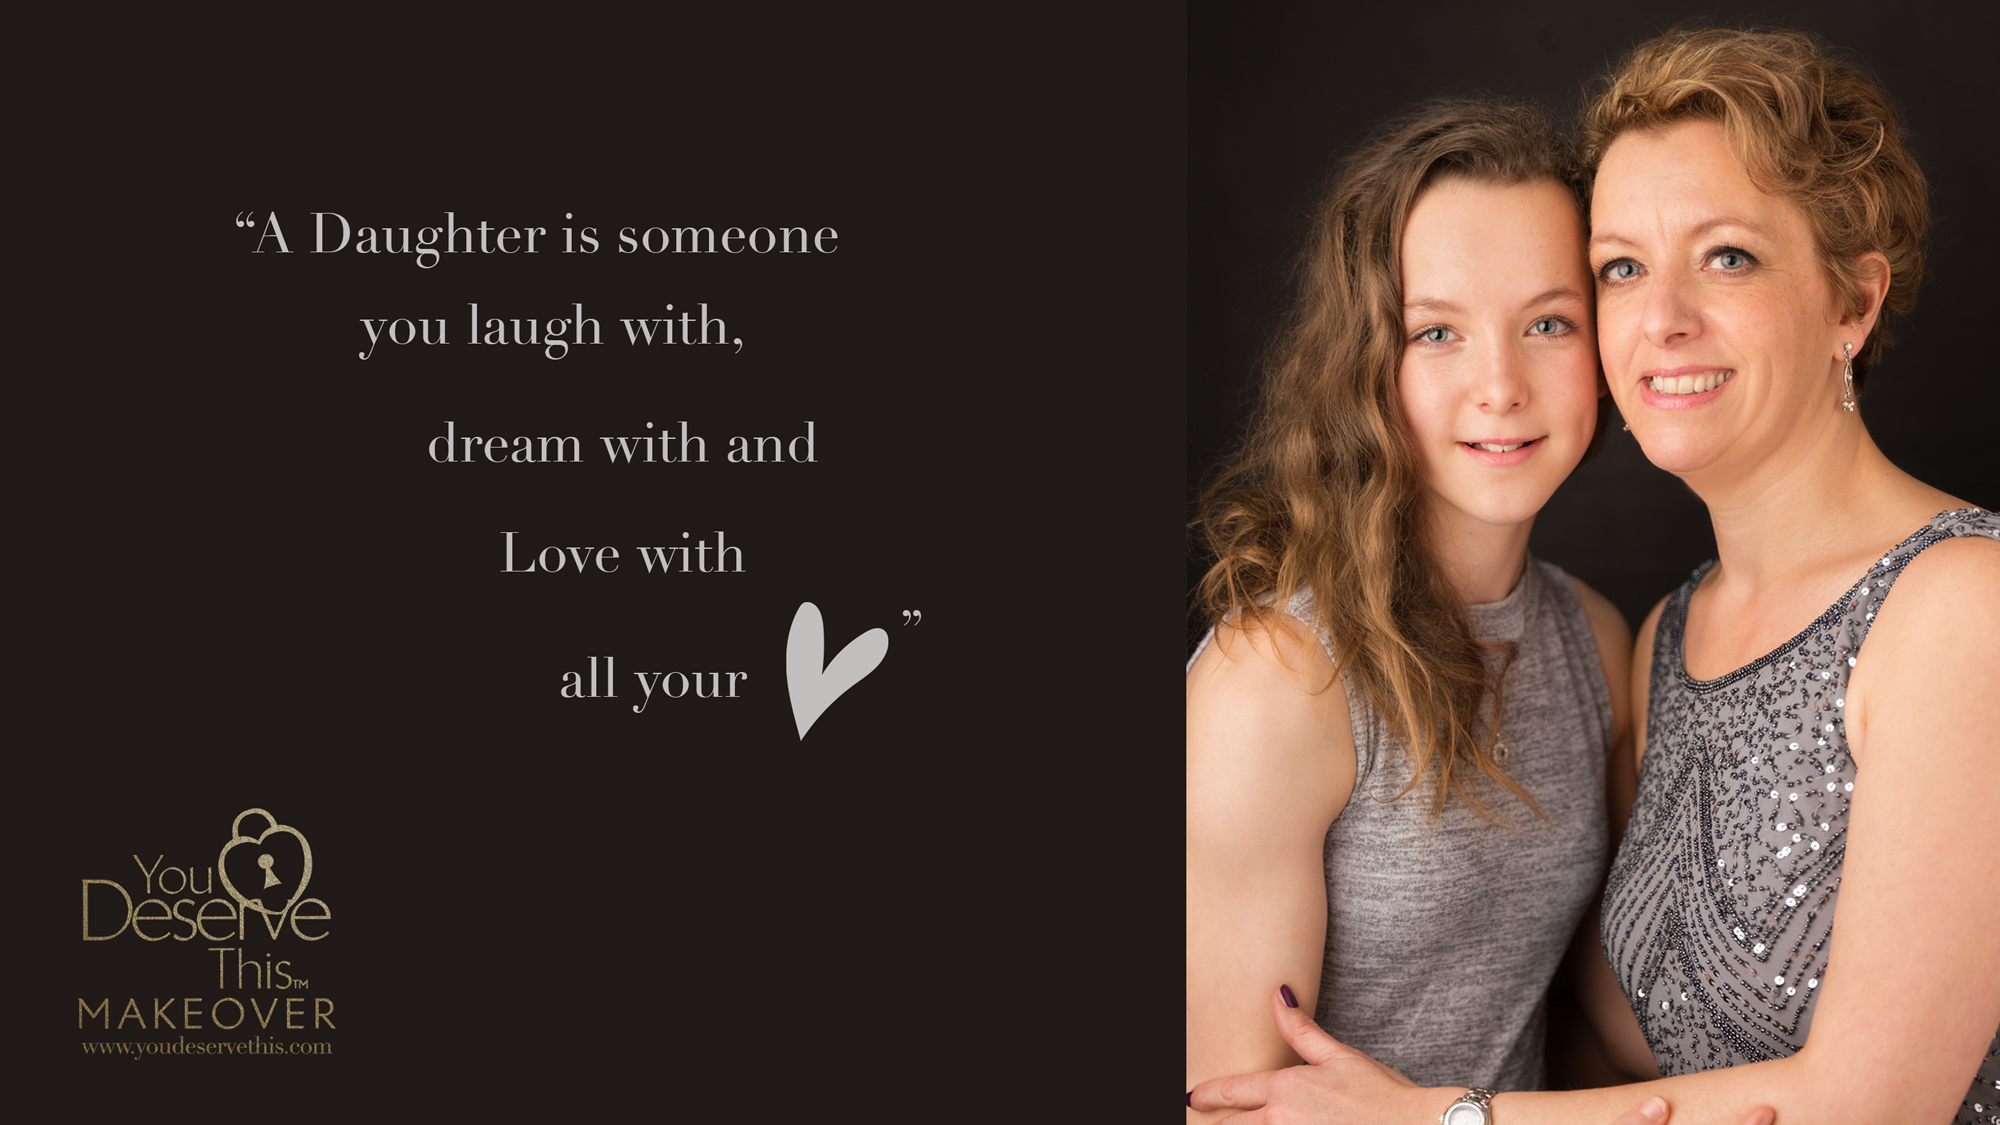 A Daughter is someone you laugh with, dream with and Love with all your heart. Celebrate your relationship and share in a wonderful day with us. www.youdeservethis.com